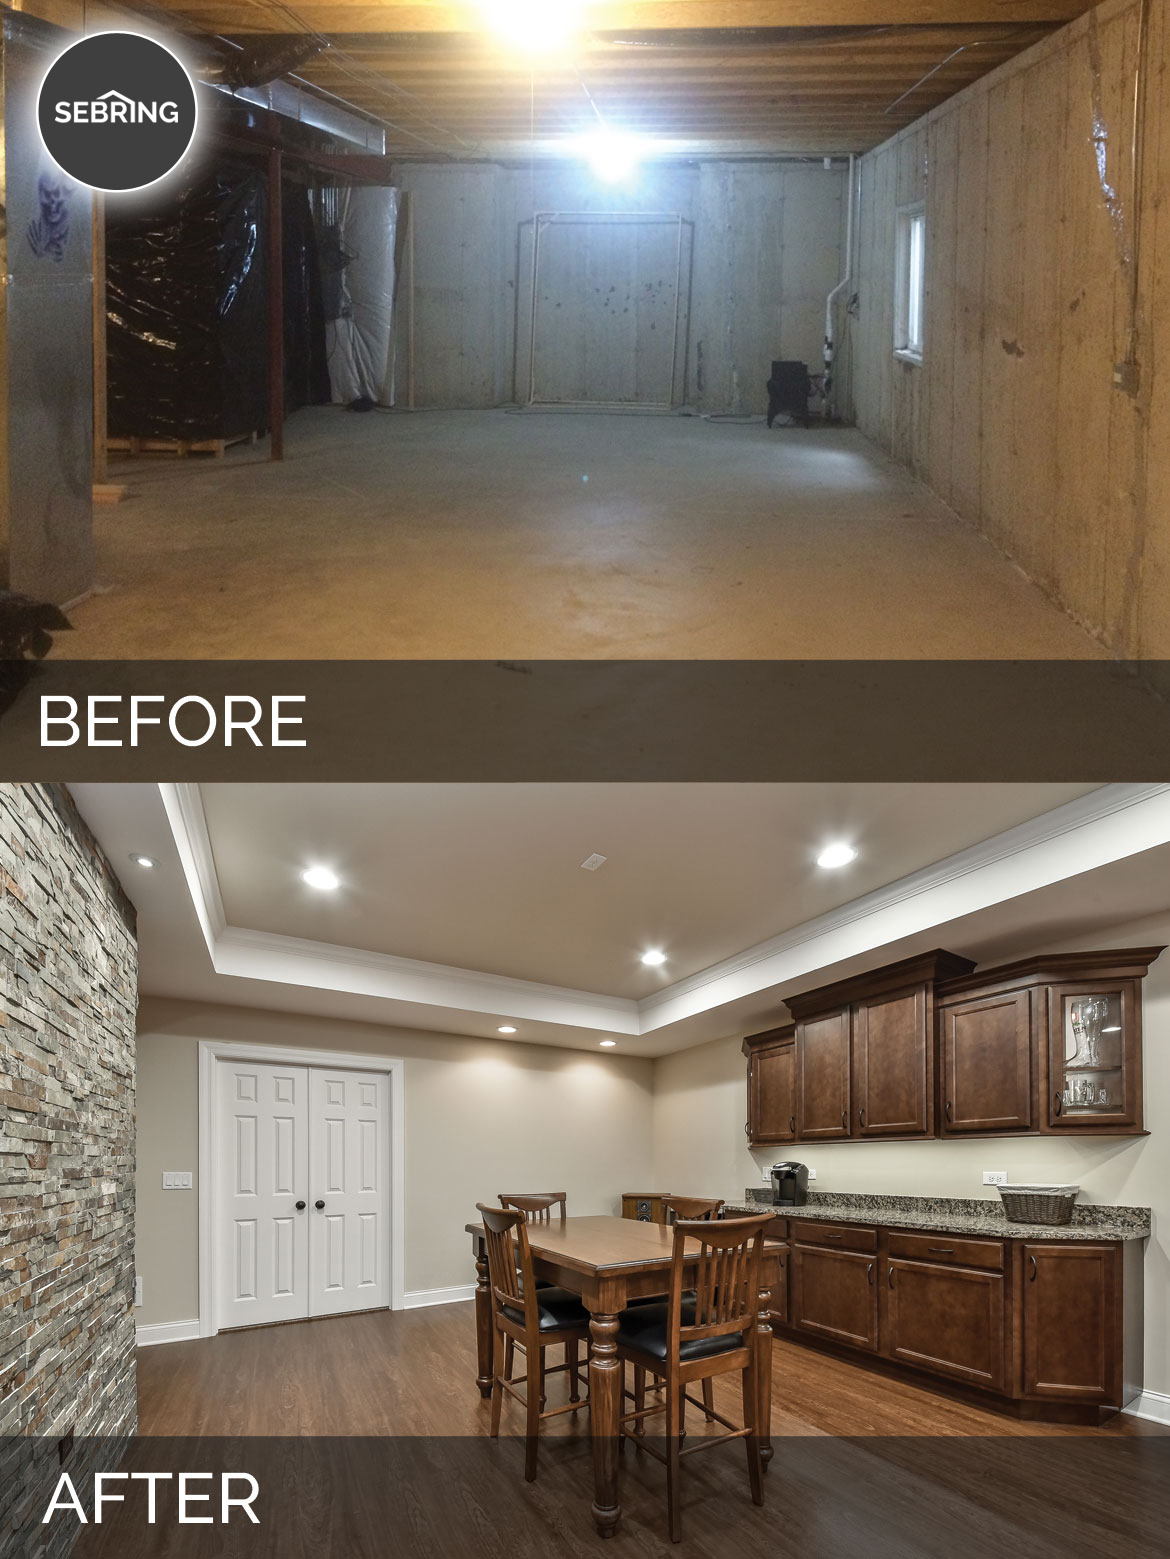 Brian Kelli S Basement Before After Pictures Home Remodeling